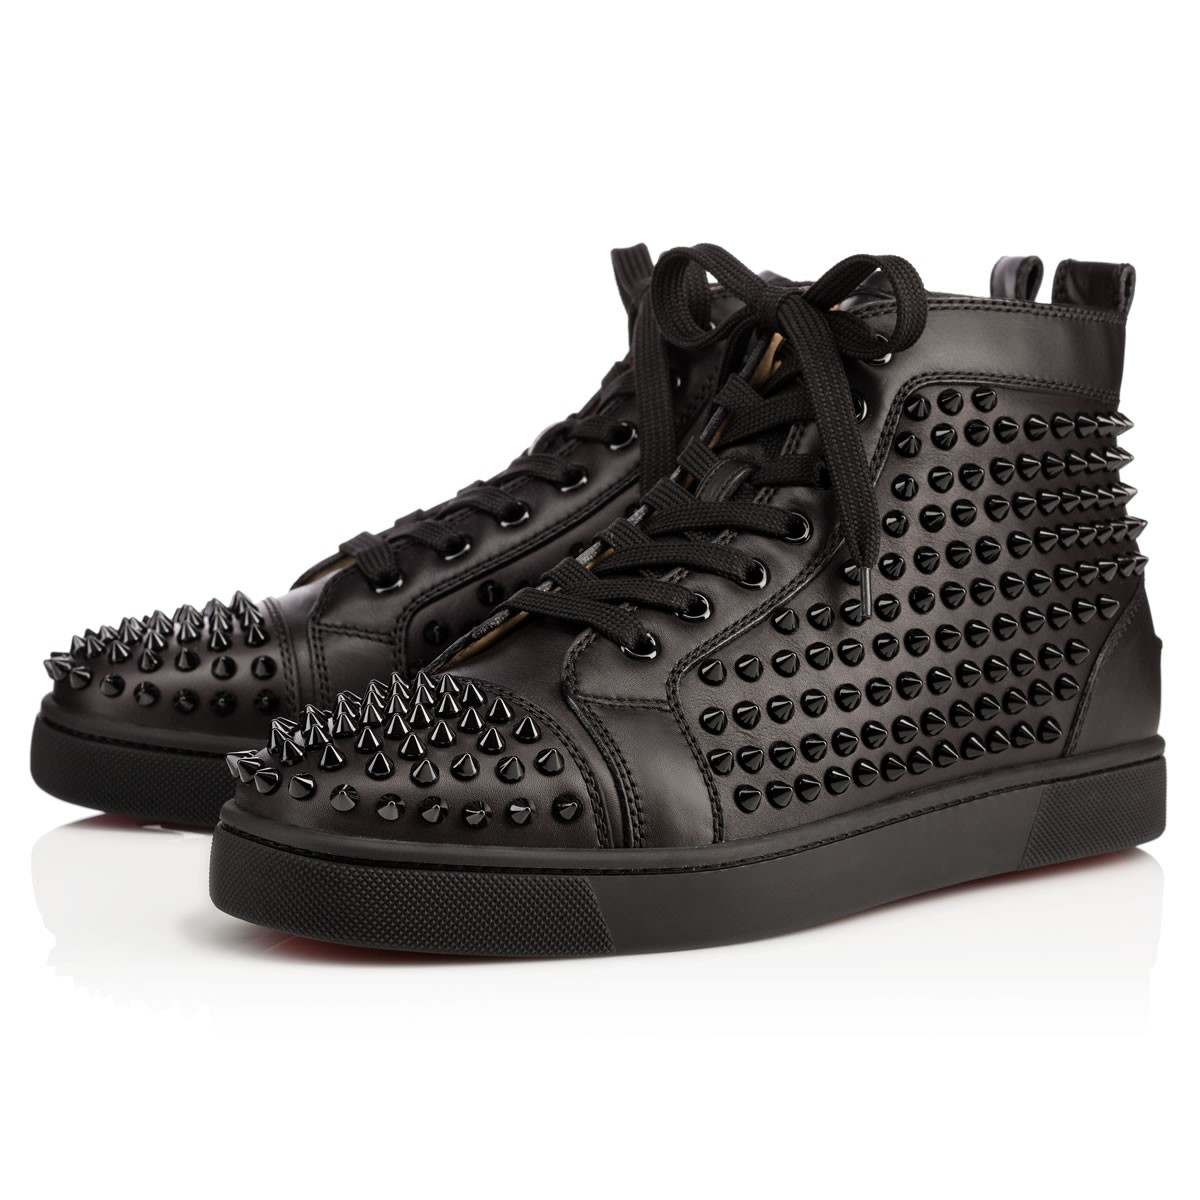 Beste Louis Spikes Black/Black/Bk Leather - Men Shoes - Christian Louboutin YP-68